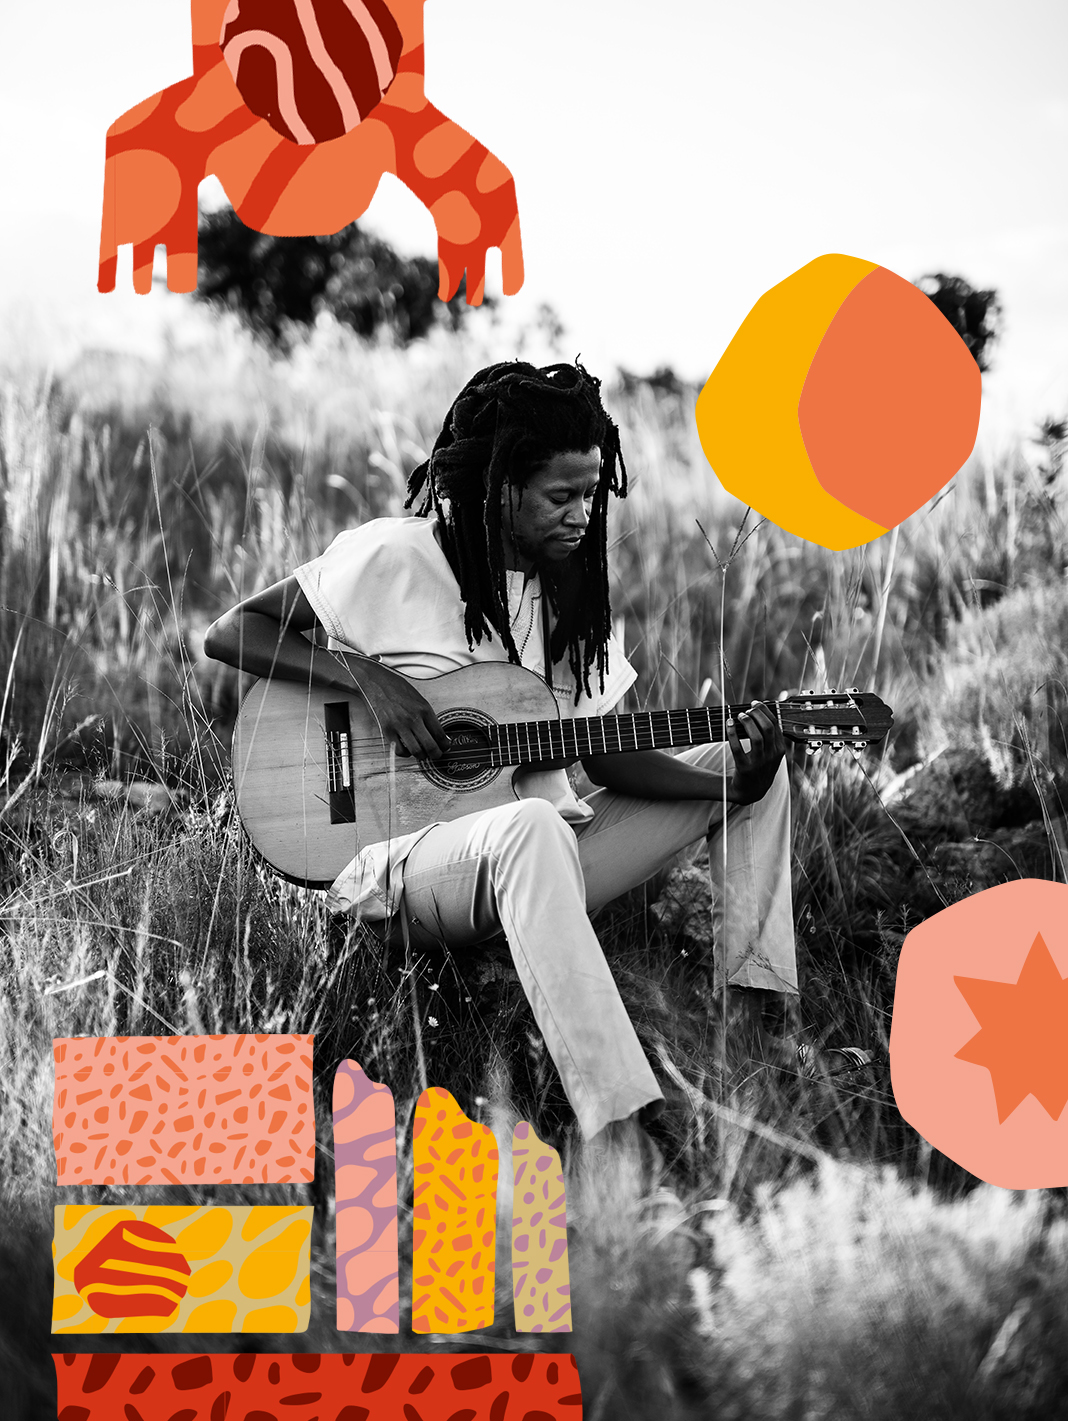 Introducing: acoustic guitar visionary & urban mythologist Sibusile Xaba